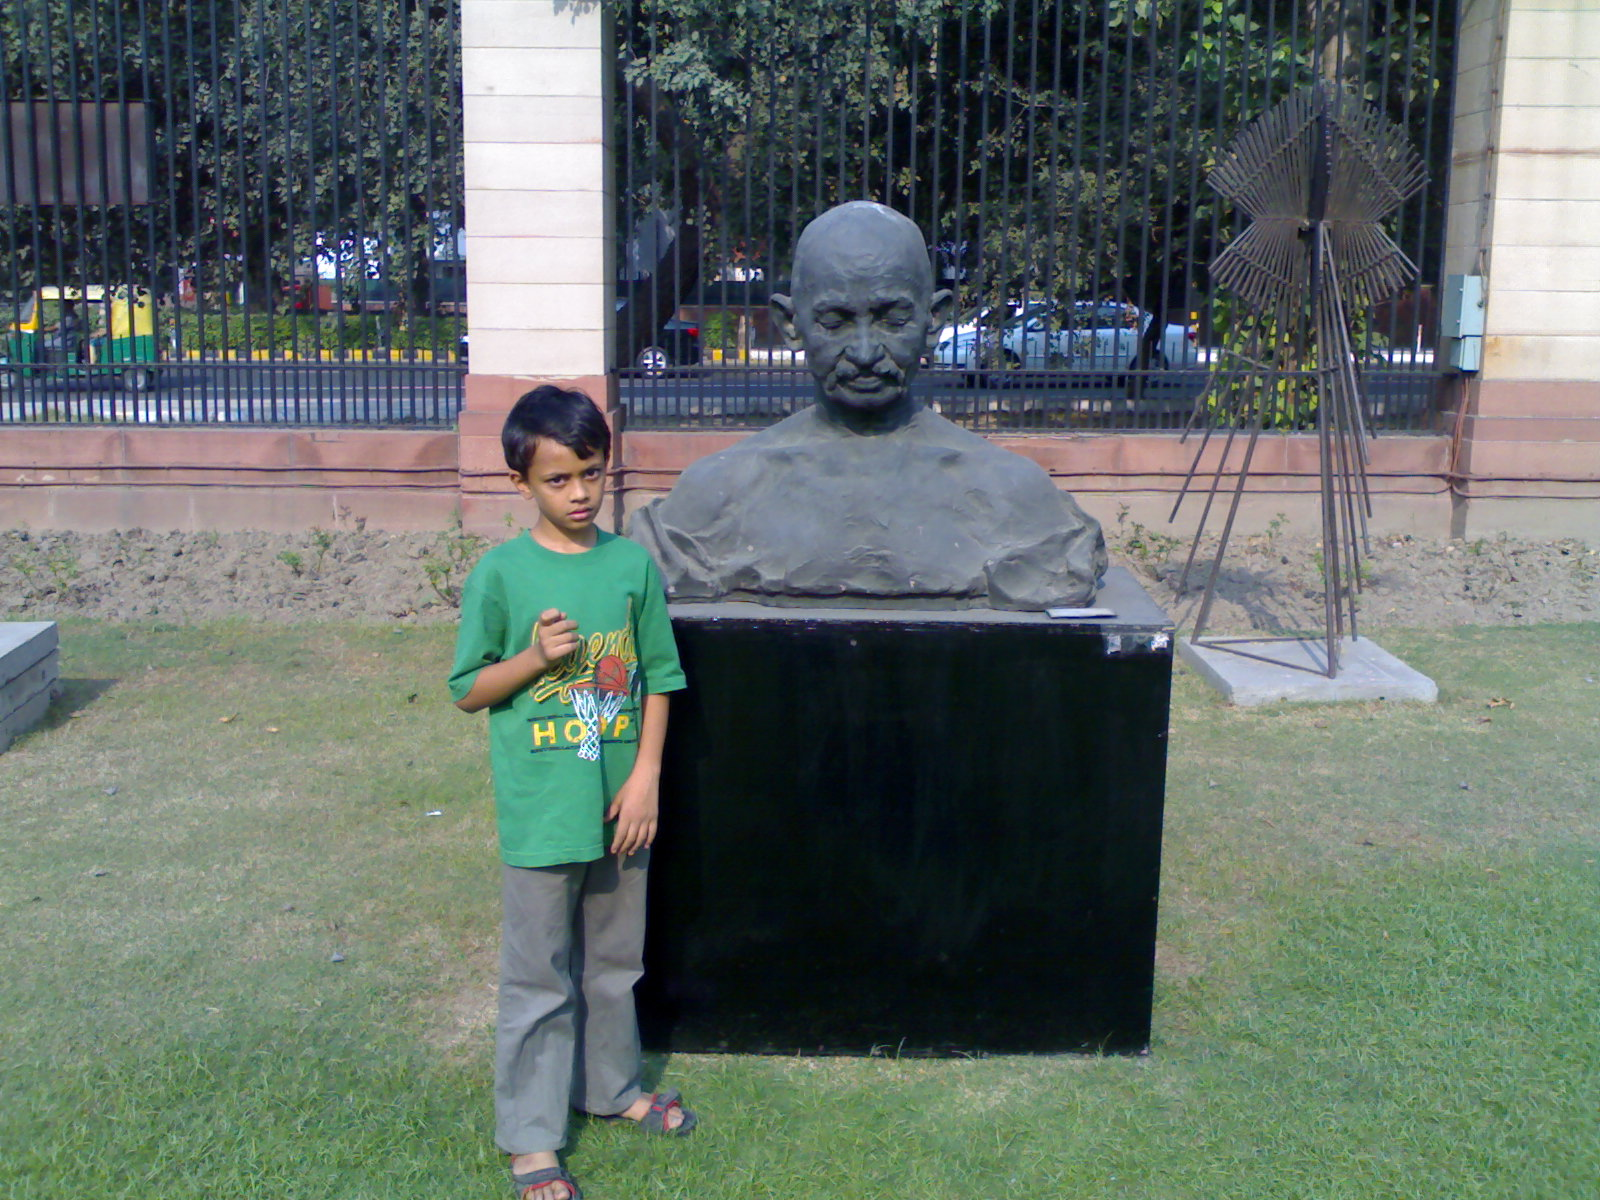 Sahil at same spot-next to Bapu